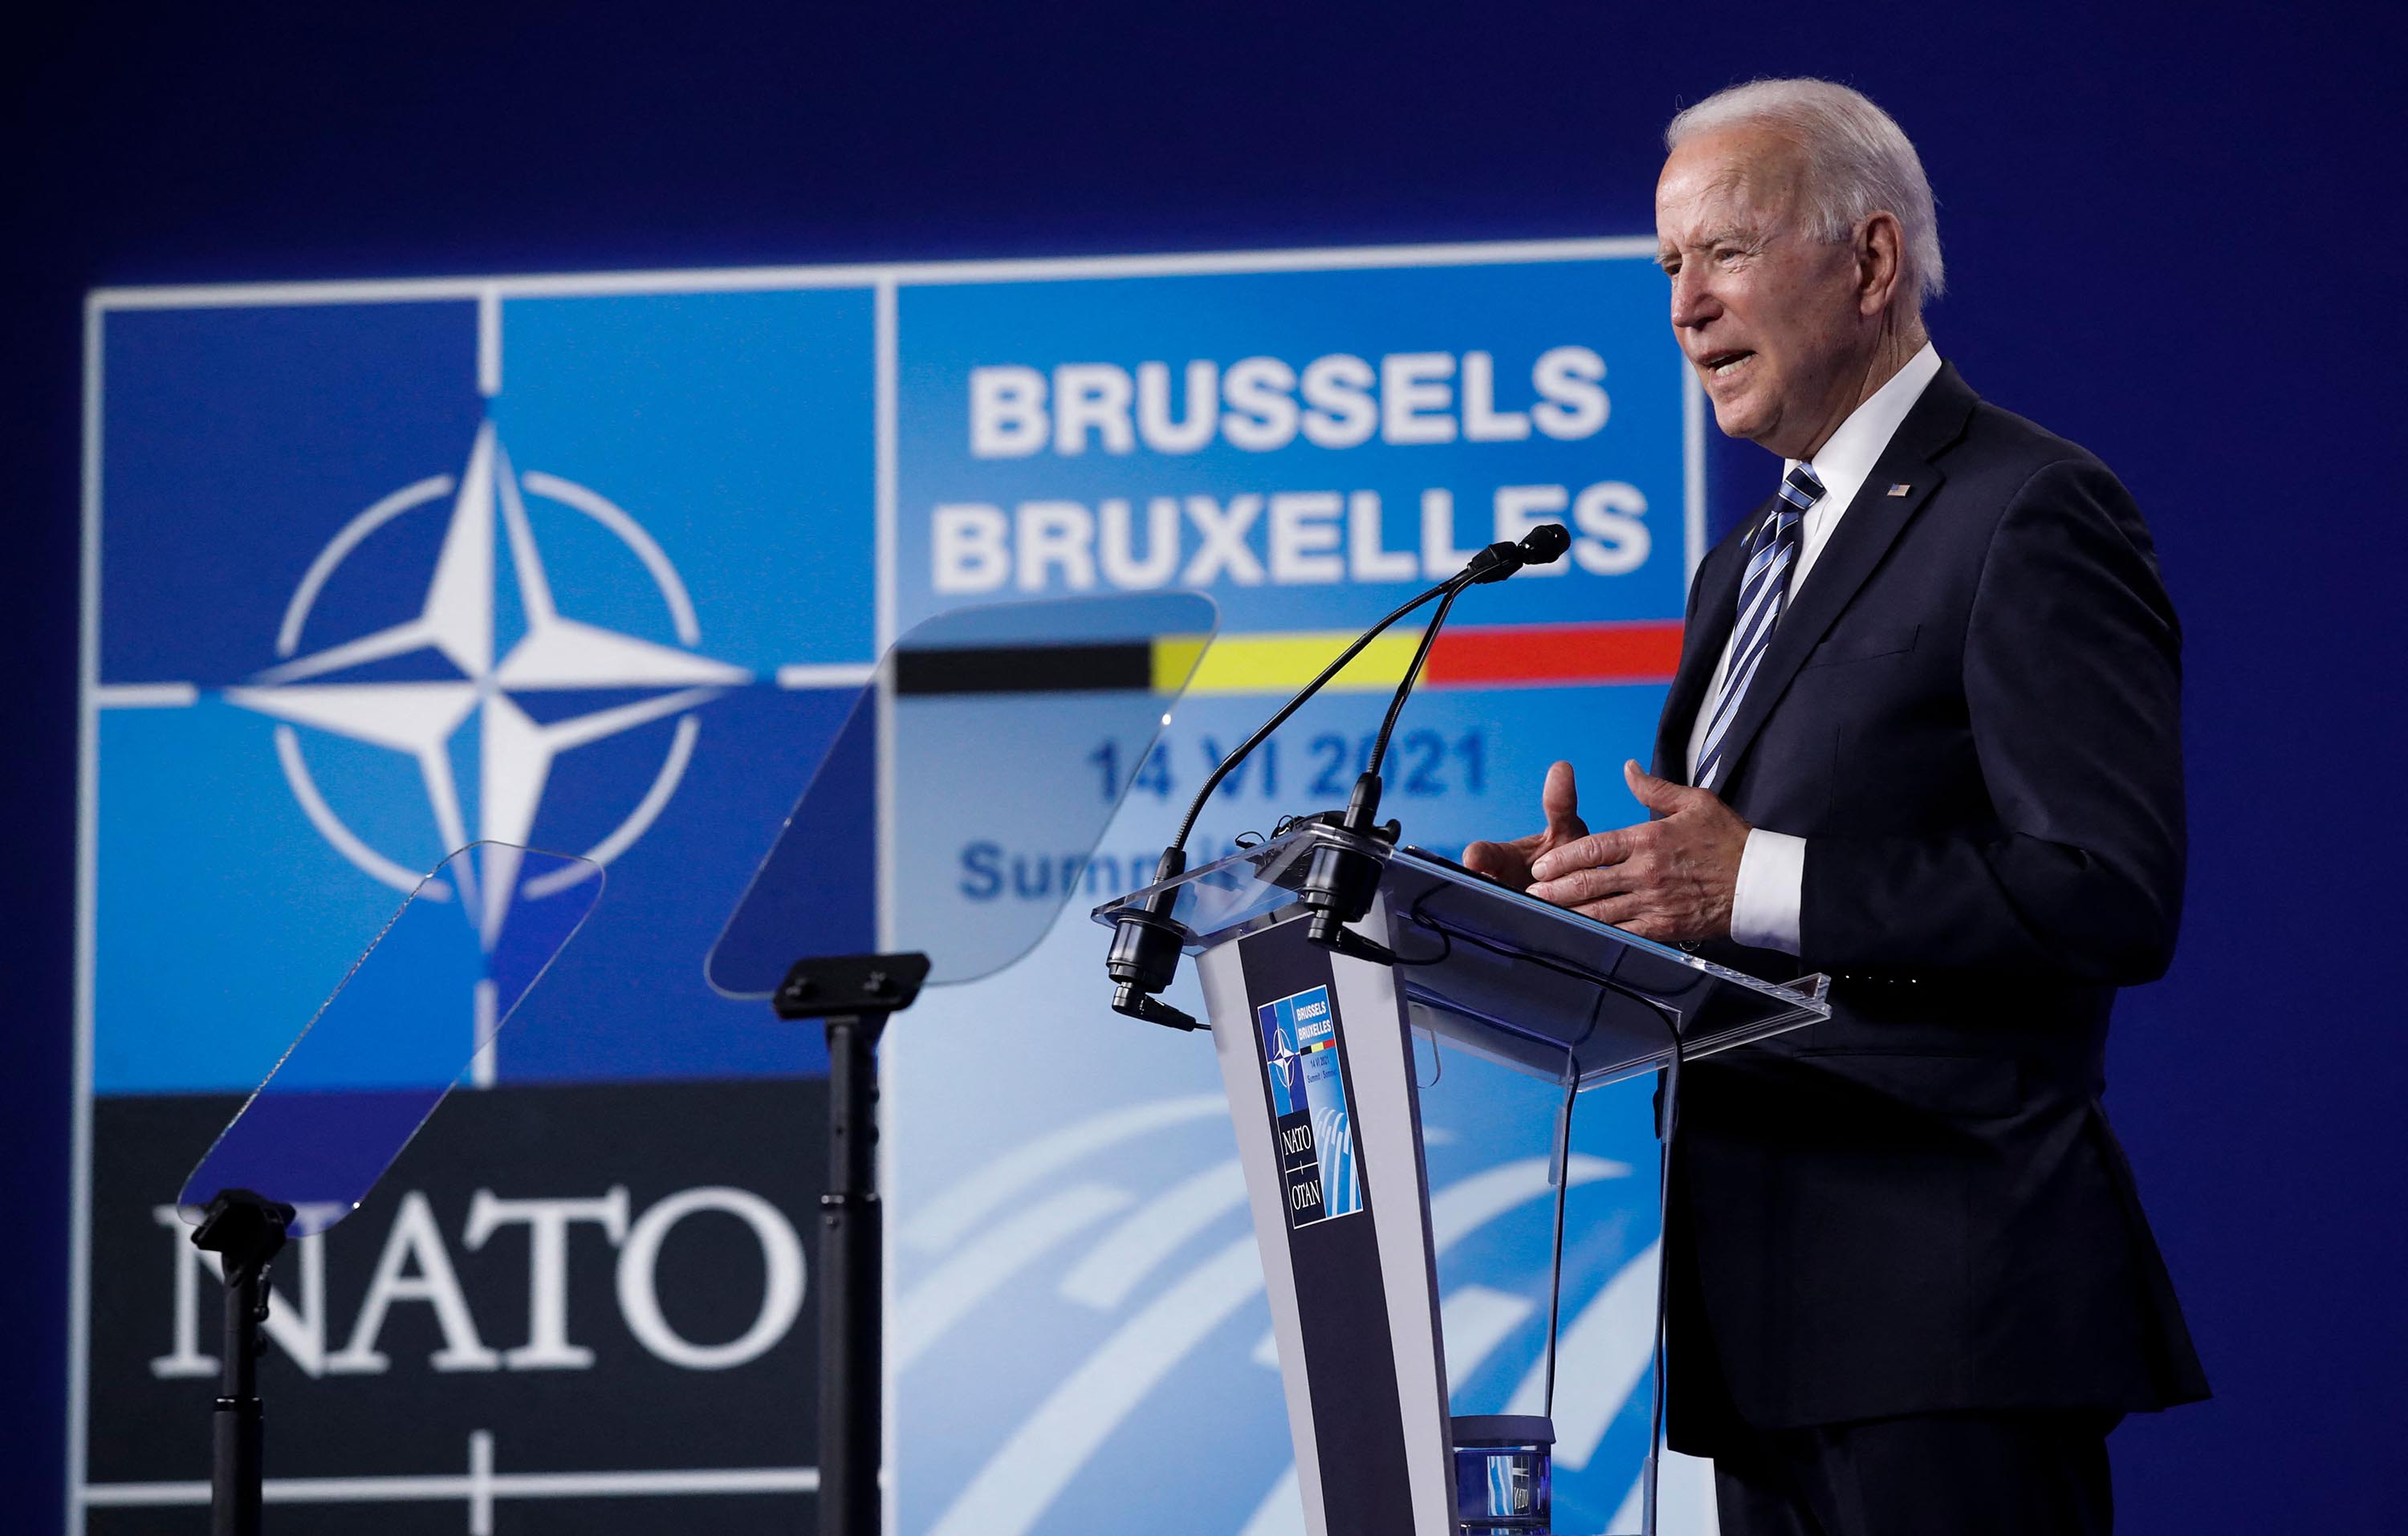 Biden says NATO must protect against 'phony populism'